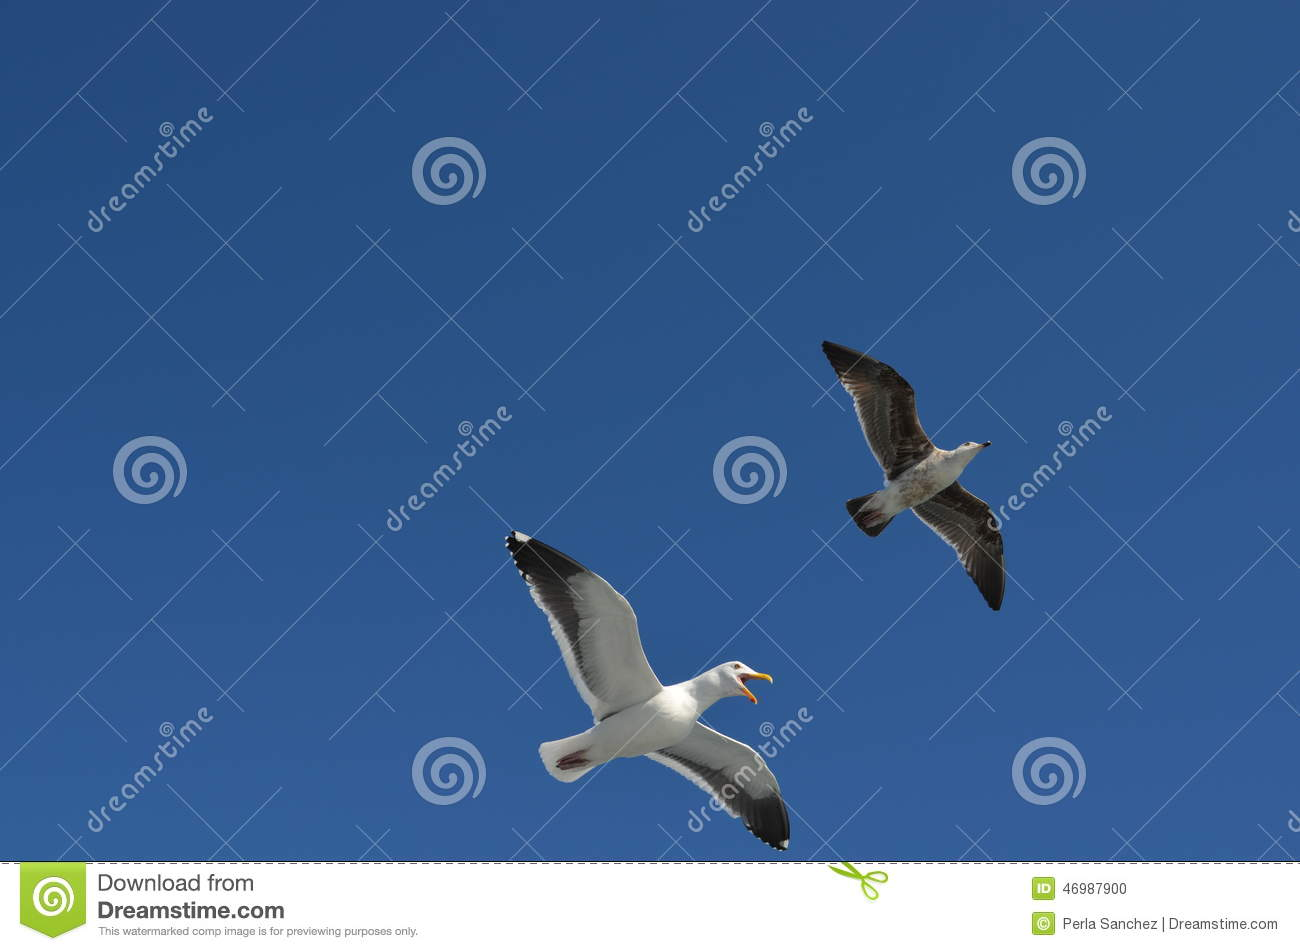 Flying Birds Free Stock Photos Download 3 416 Free Stock: Two Birds Flying Stock Photo. Image Of Nature, Animals